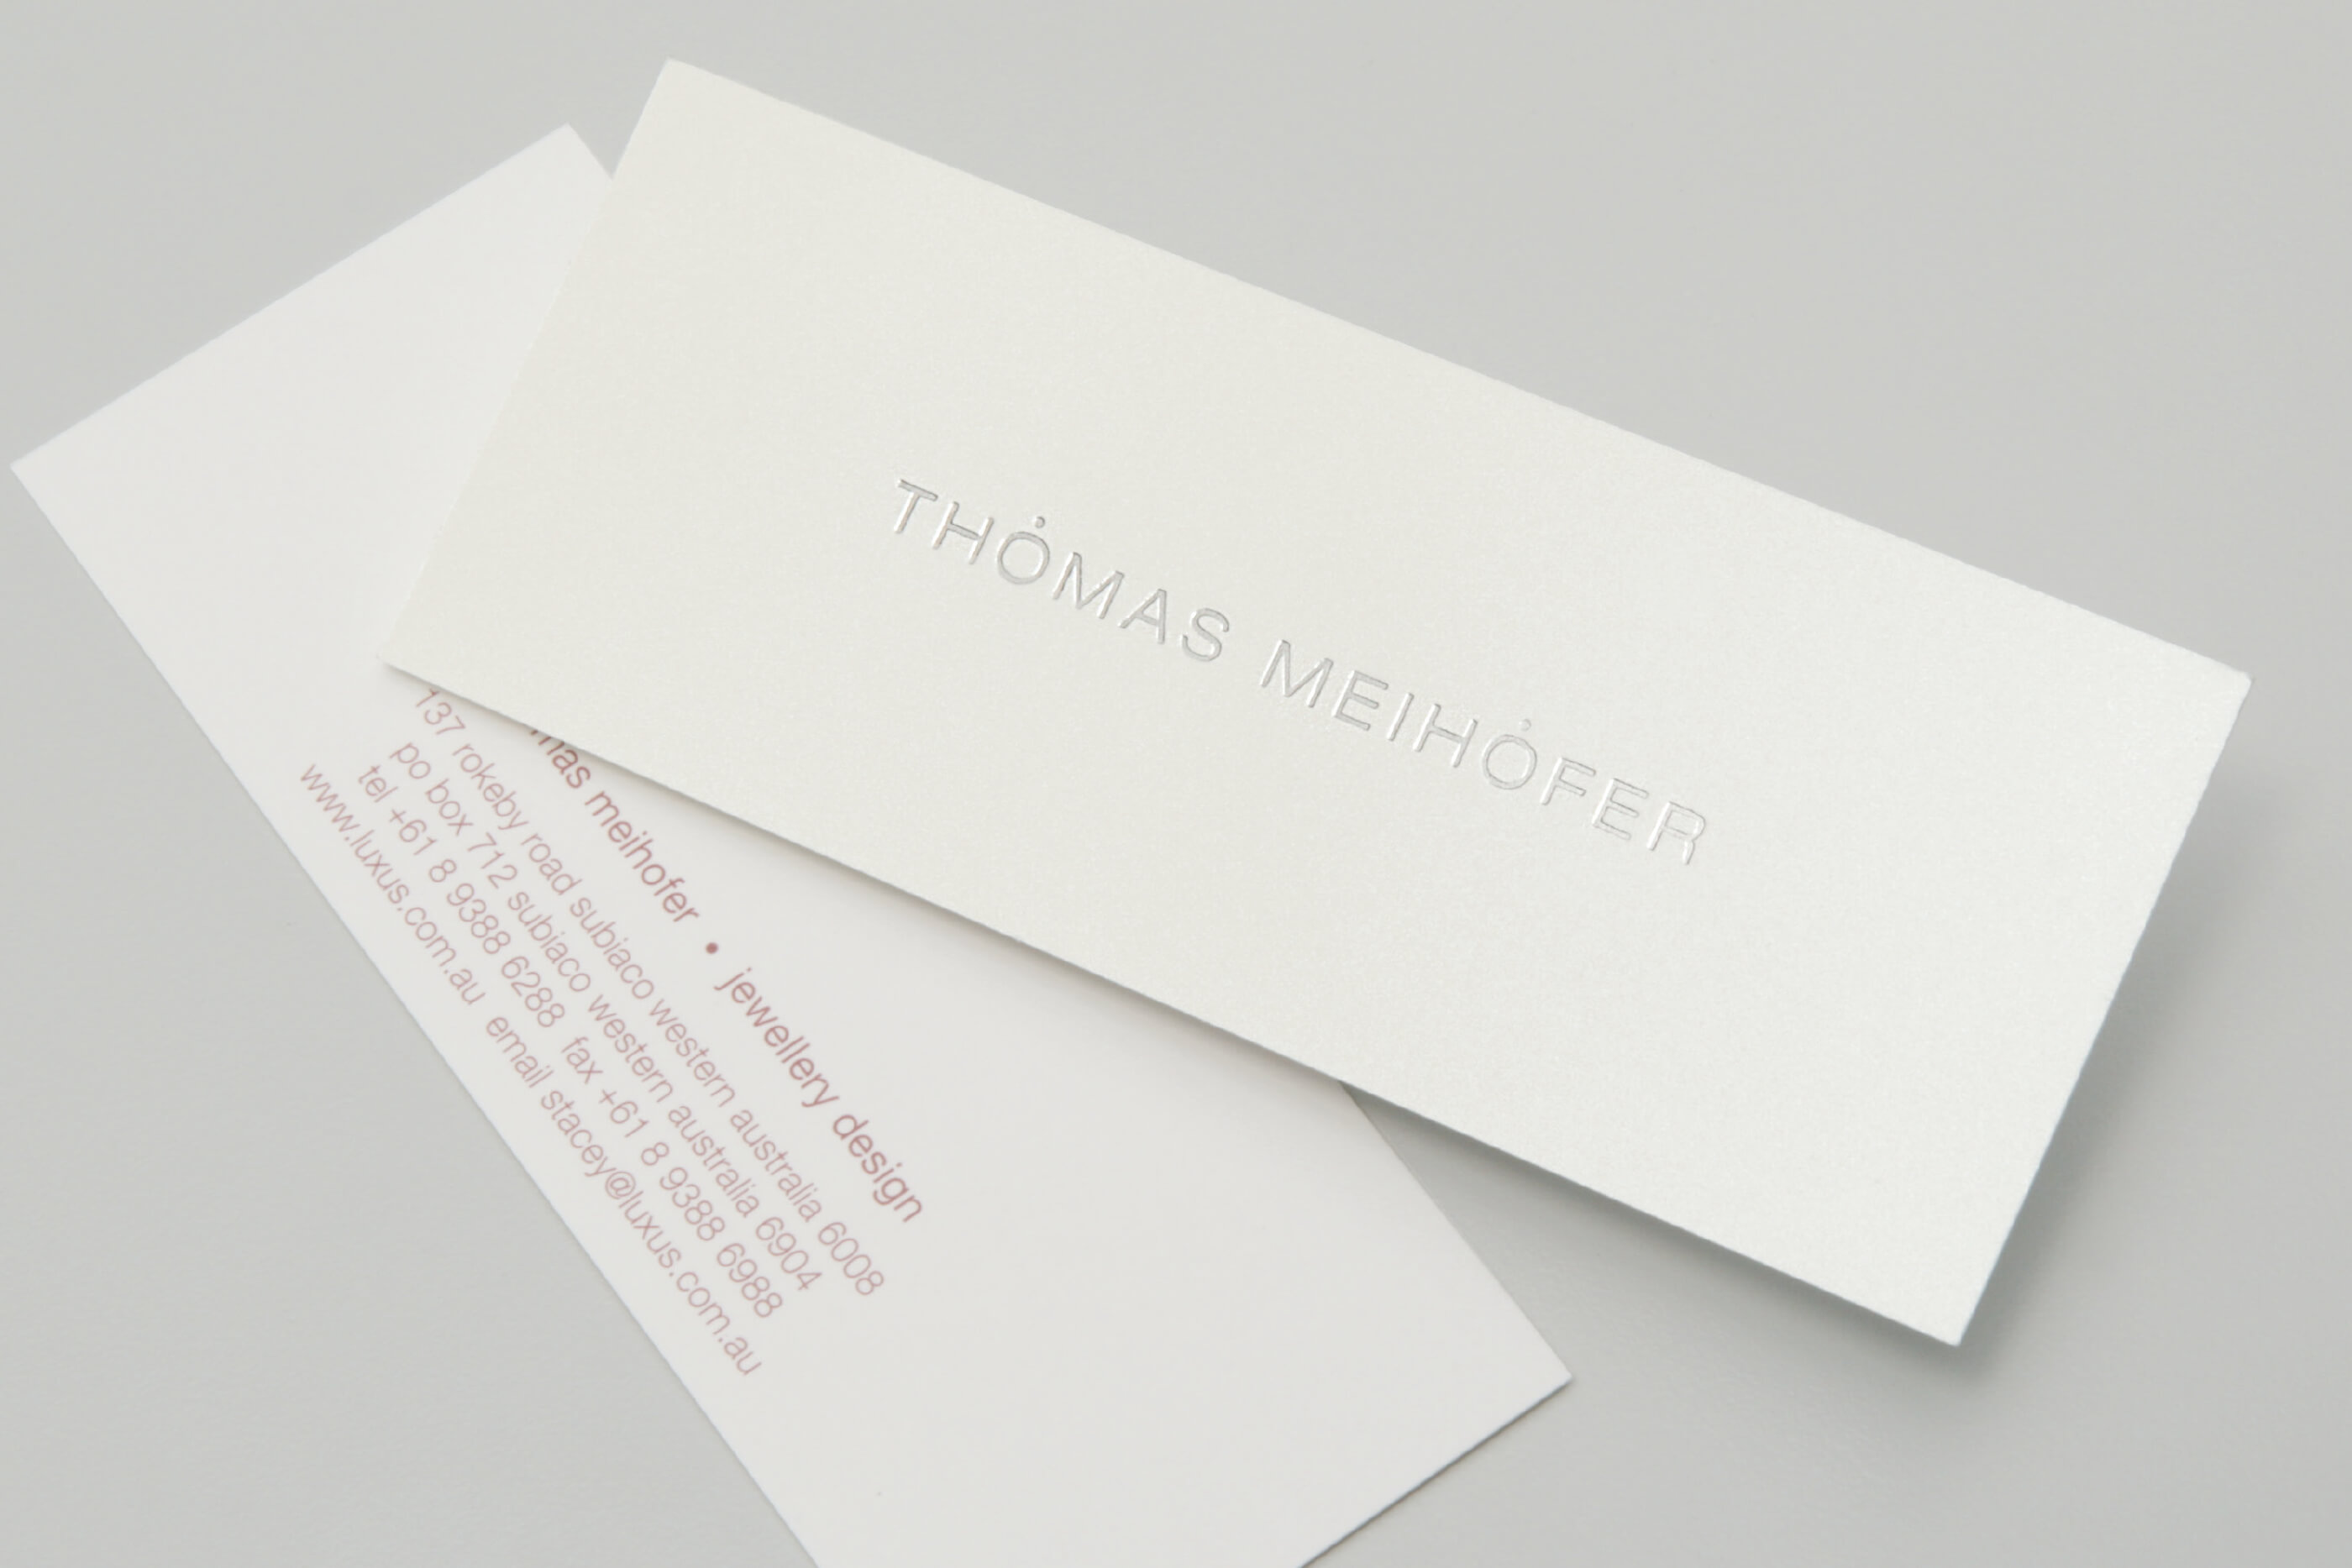 thomas_meihofer_business_cards